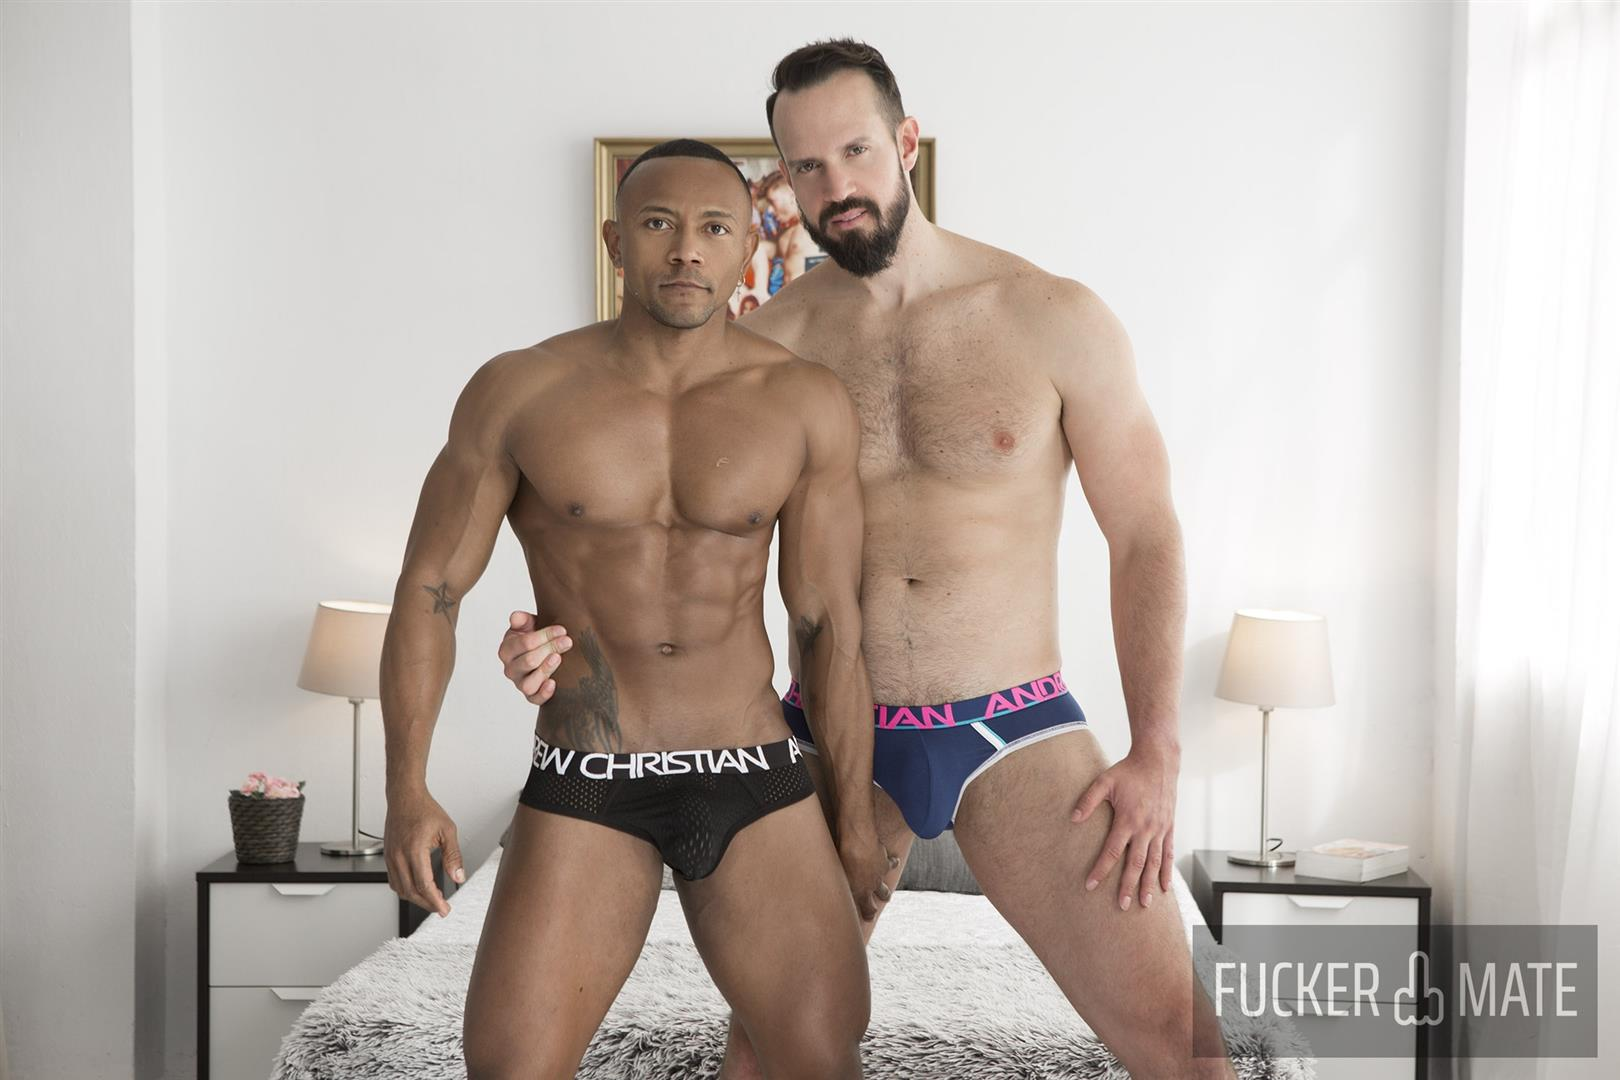 Fuckermate-Andy-Onassis-and-Santi-Konnor-Thick-Uncut-Cock-Brazilian-Bareback-Gay-Sex-01 Power Top Andy Onassis Breeds Santi Konnor With His Thick Uncut Cock